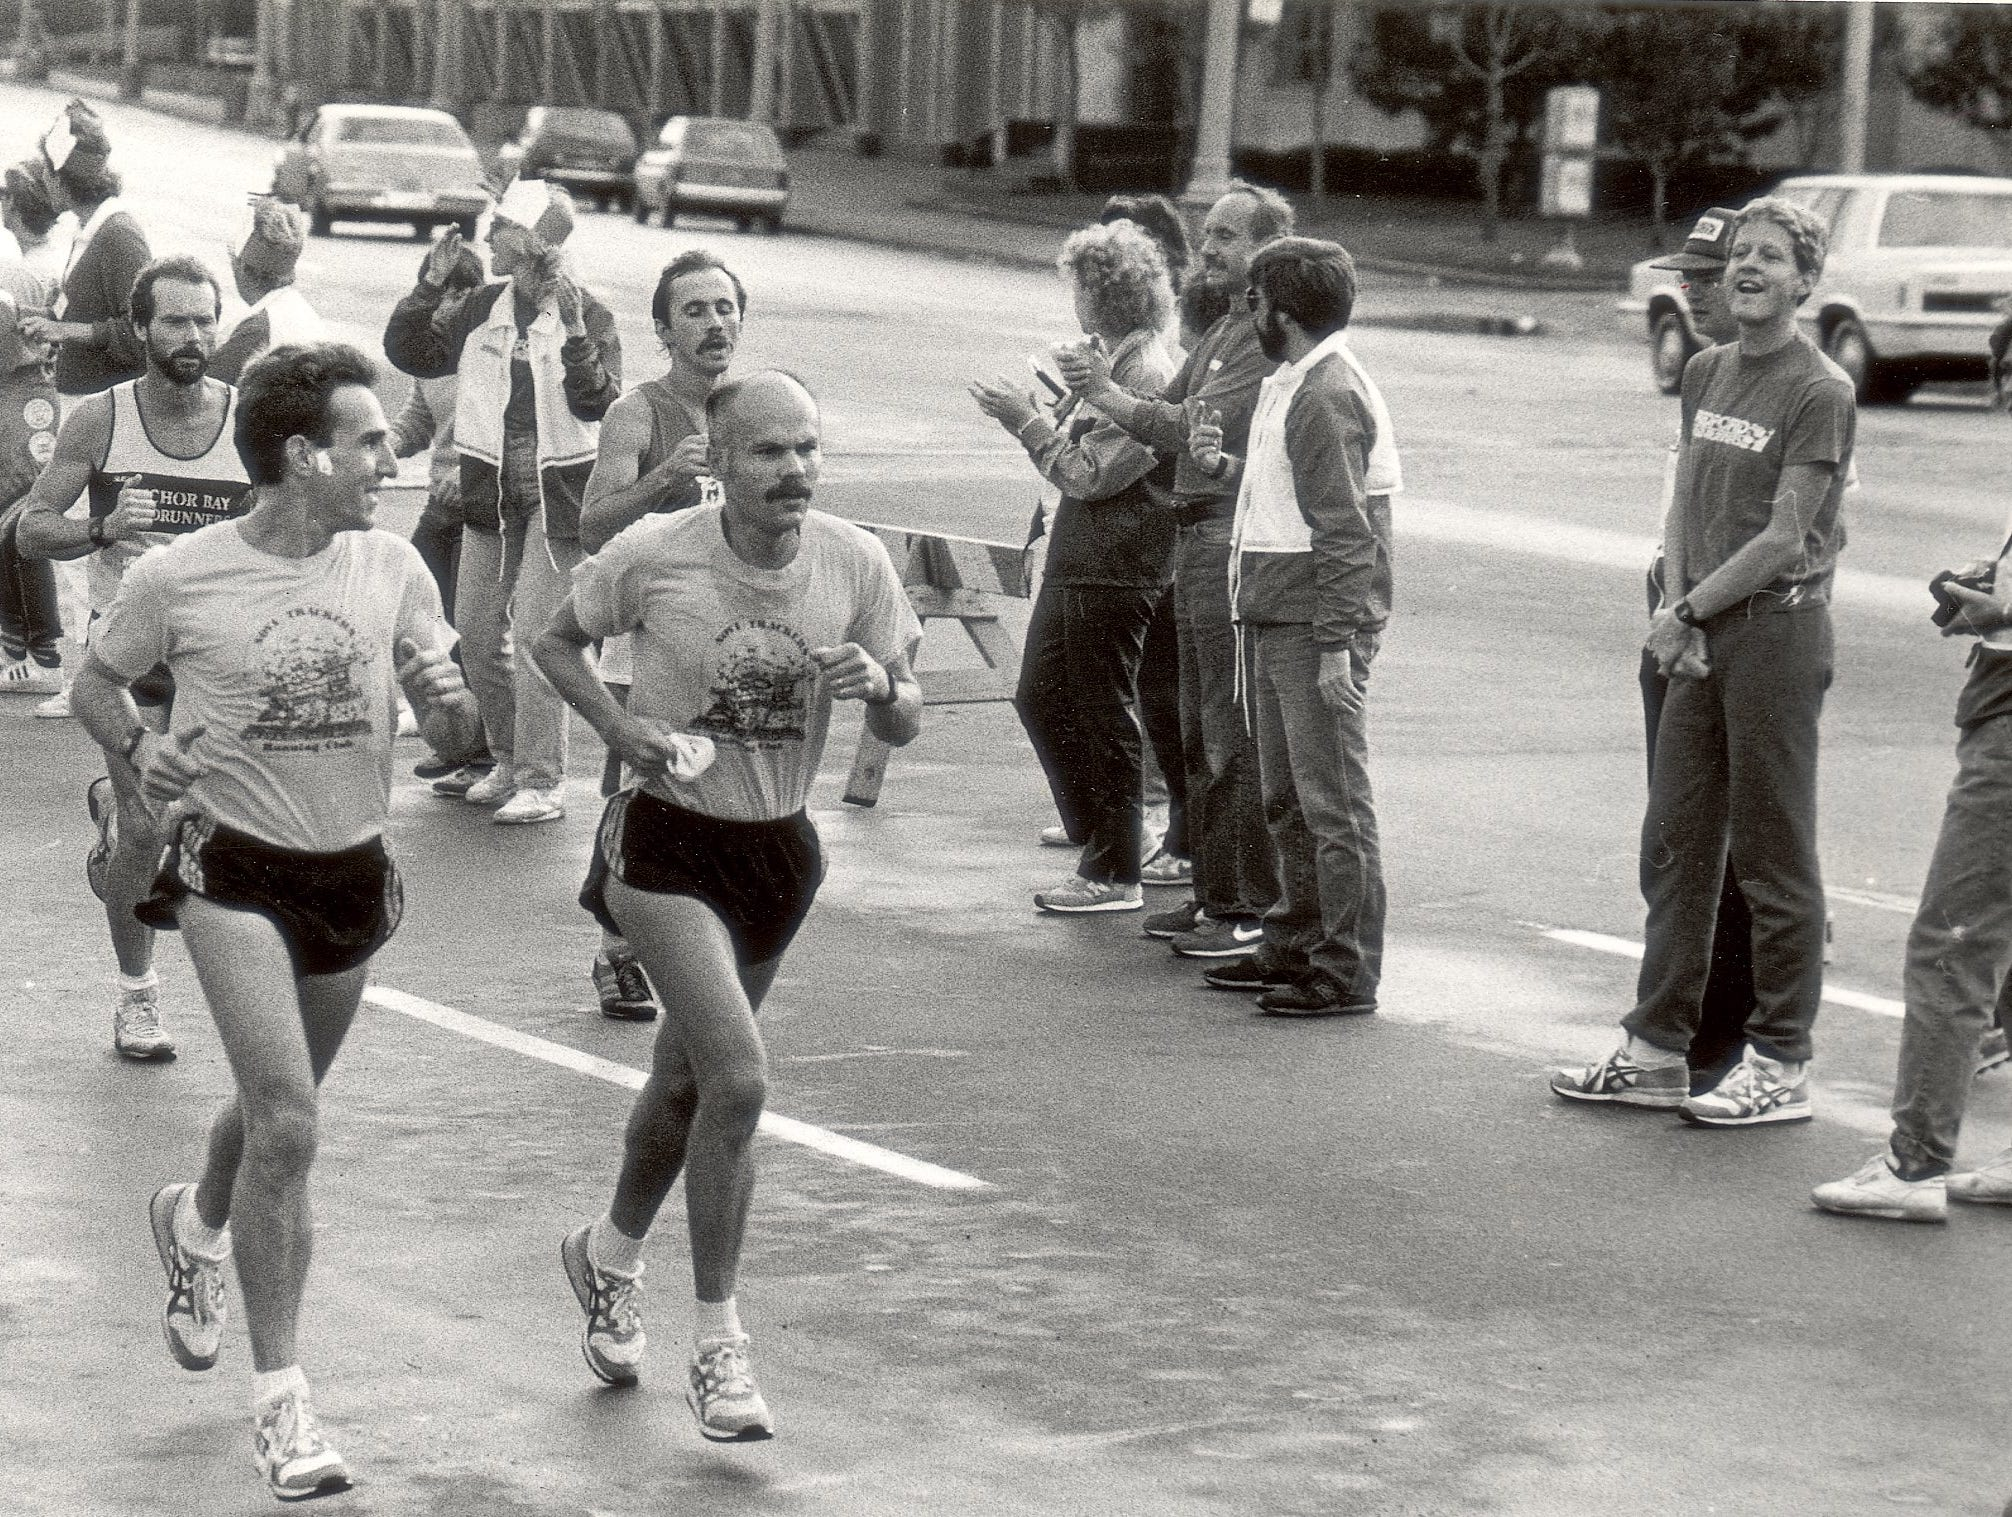 Runners participate in the Detroit Free Press marathon on Oct. 14, 1985.